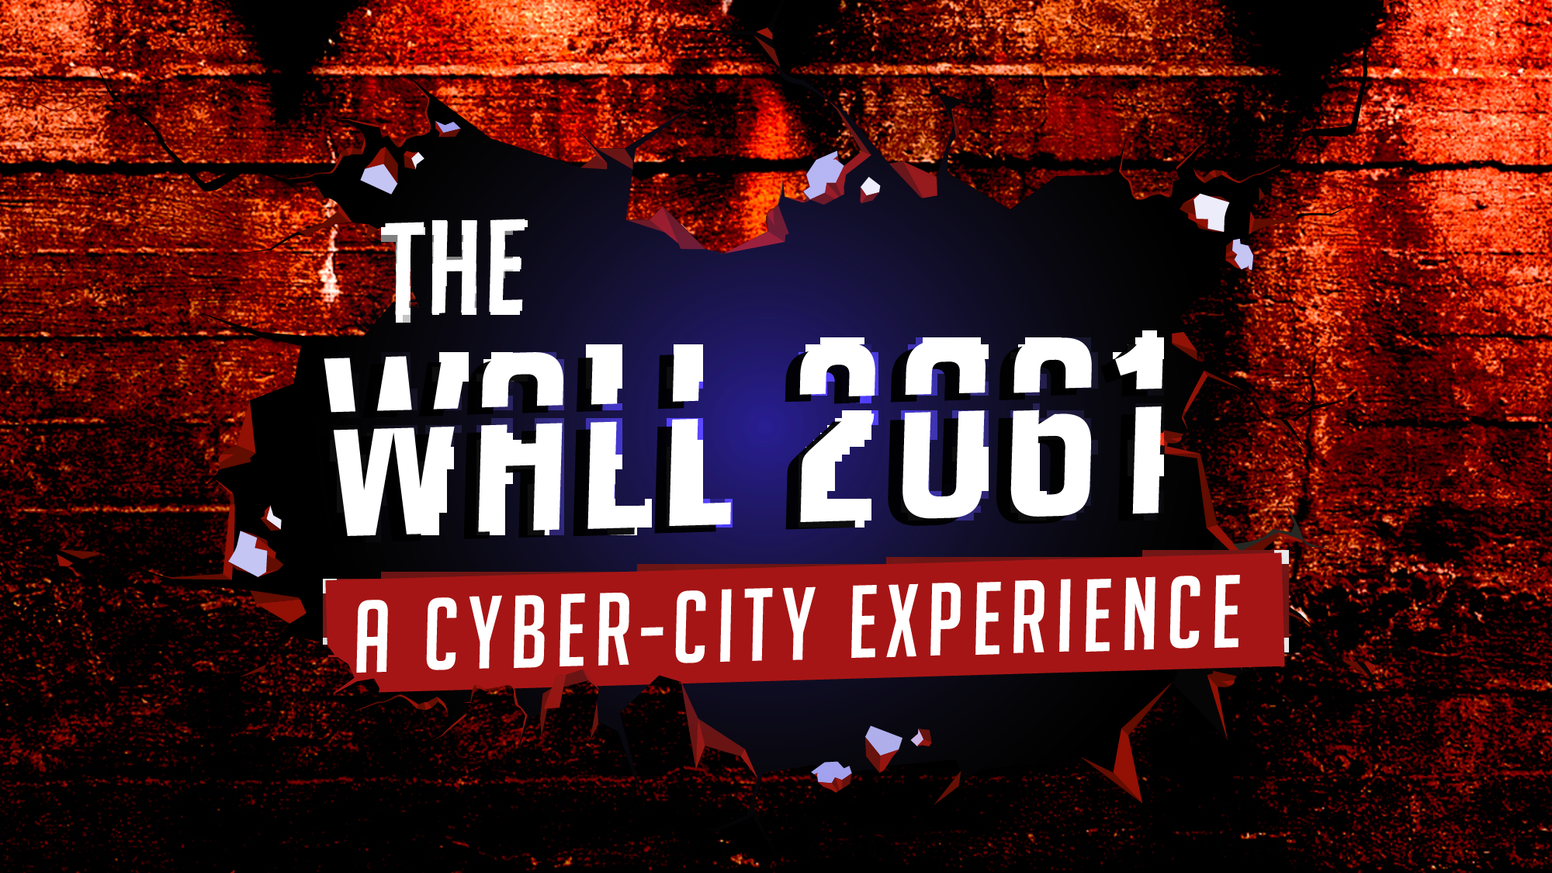 The Wall 2061 is a city-wide live-action roleplaying game (Larp) where you dive into a Berlin where The Wall still stands.